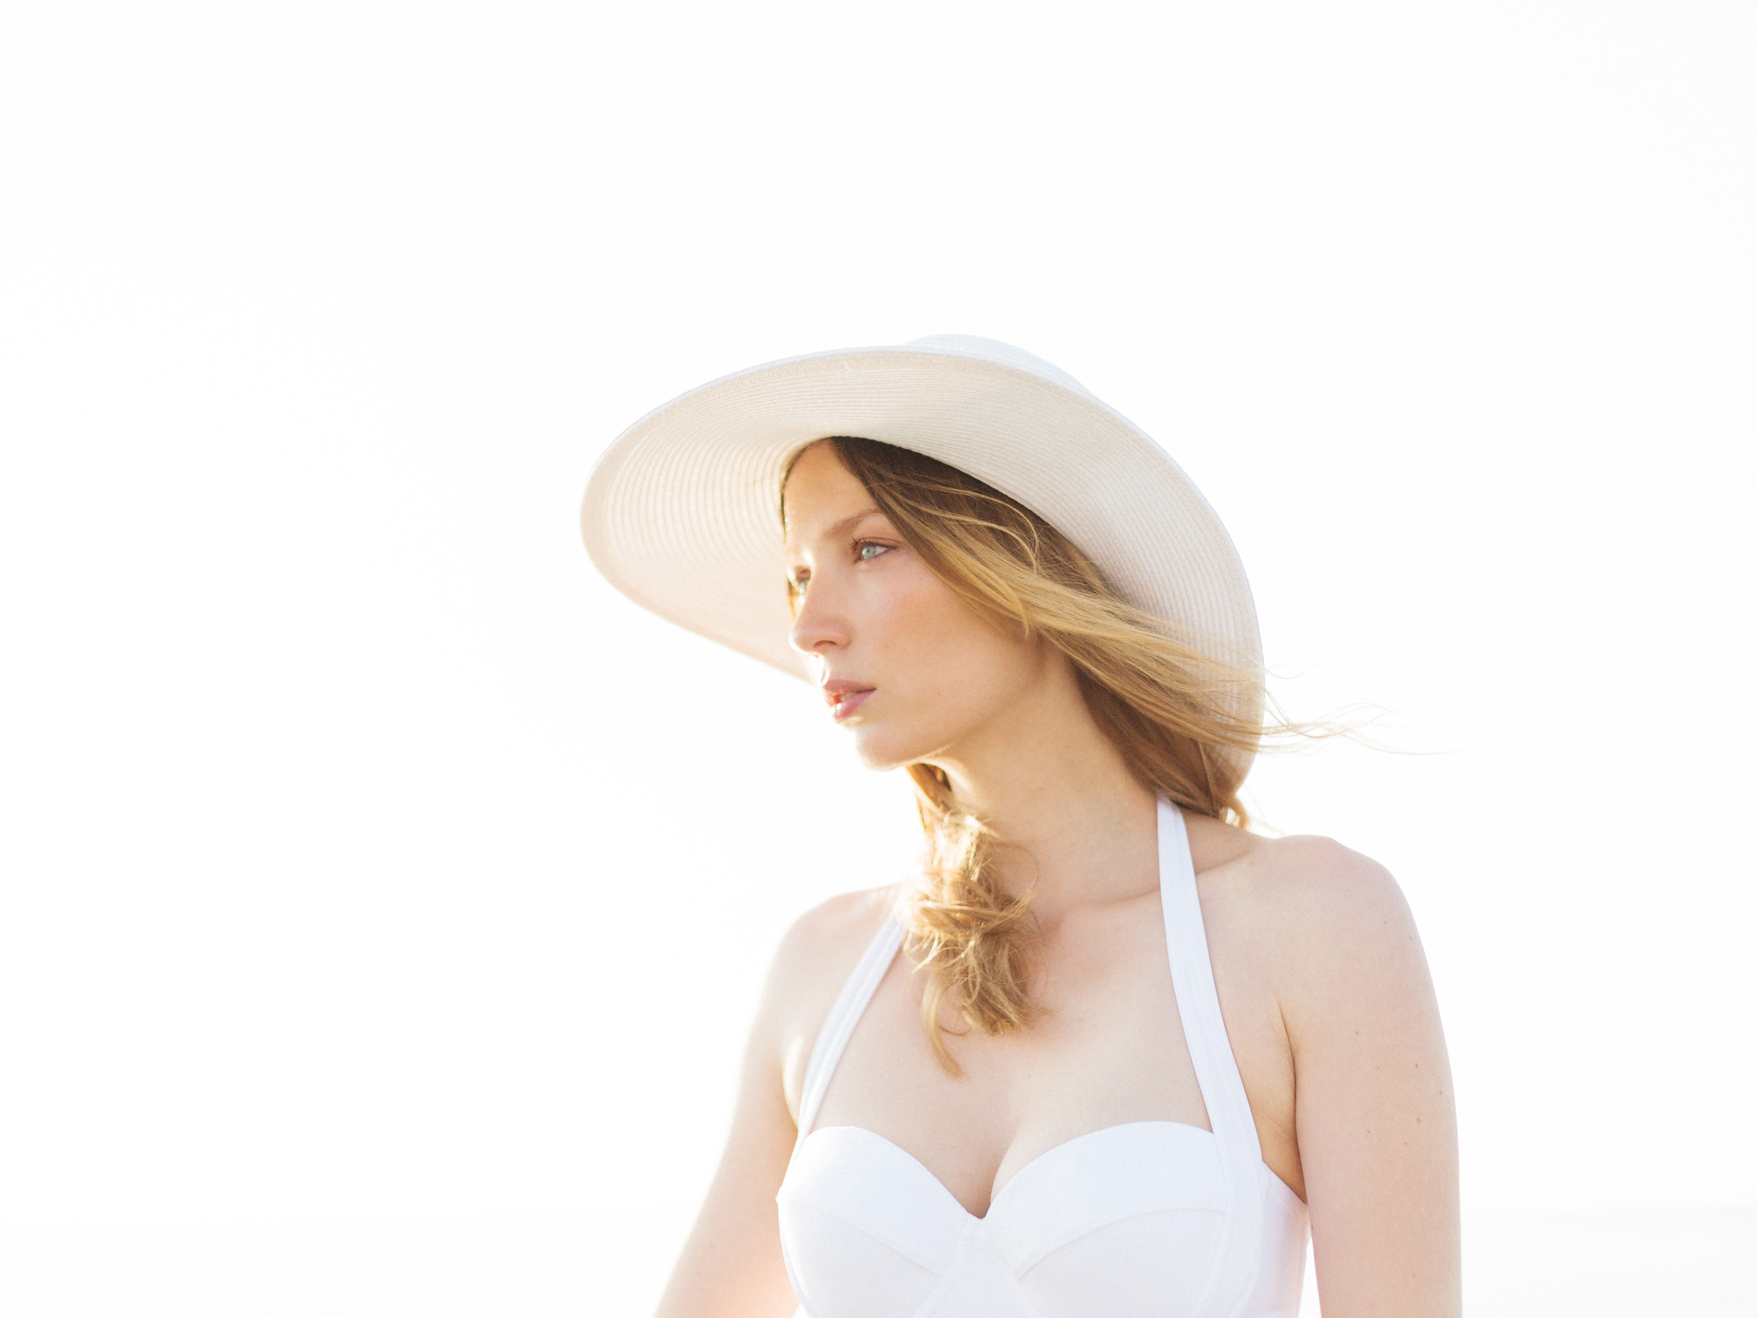 Saint Tropez Honeymoon Photo Session by Ashley Ludaescher Photography (27)